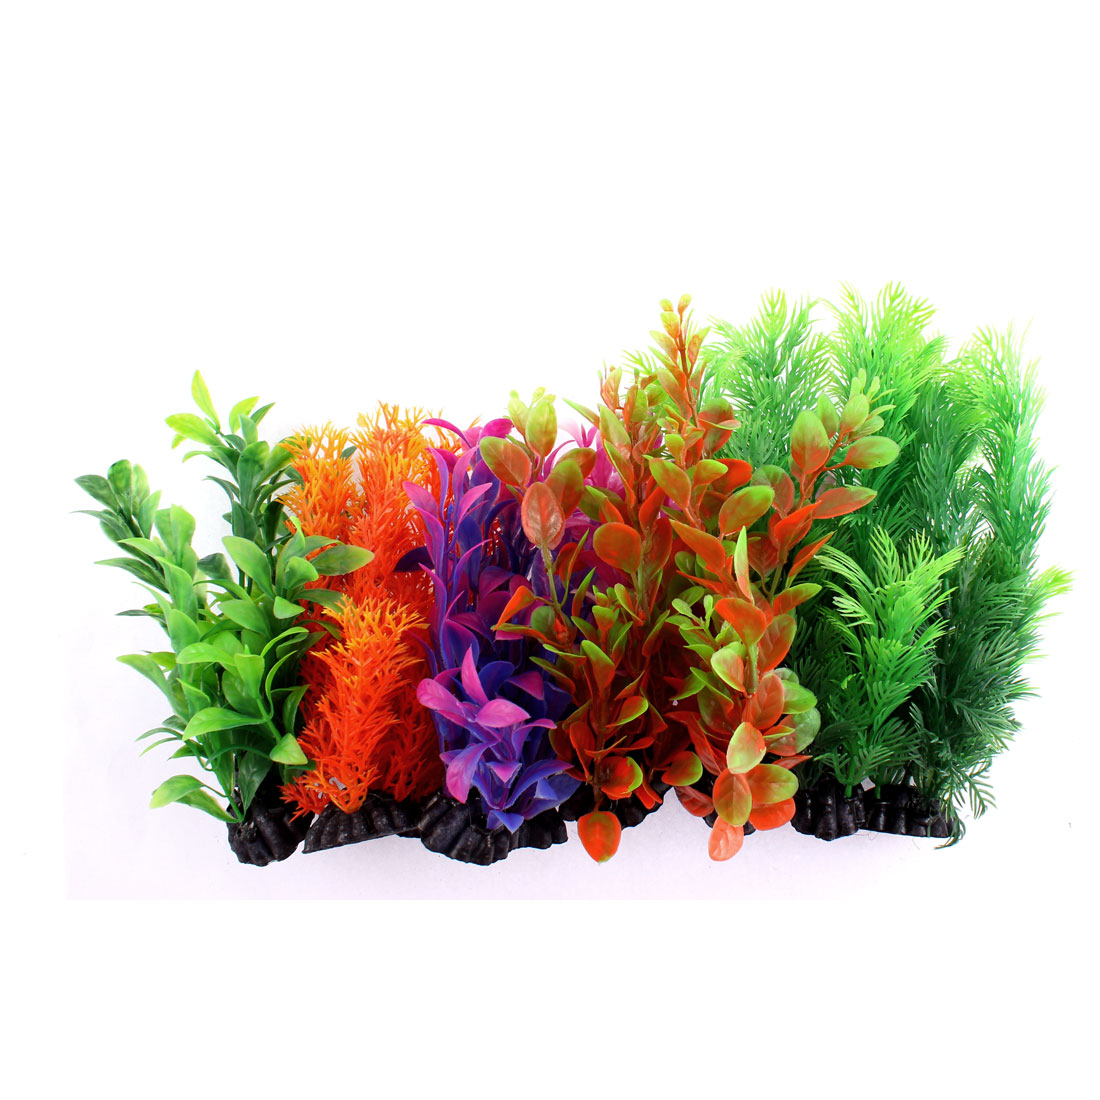 Aquarium Plastic Artificial Water Plants Decoration Assorted Colors 12 in 1